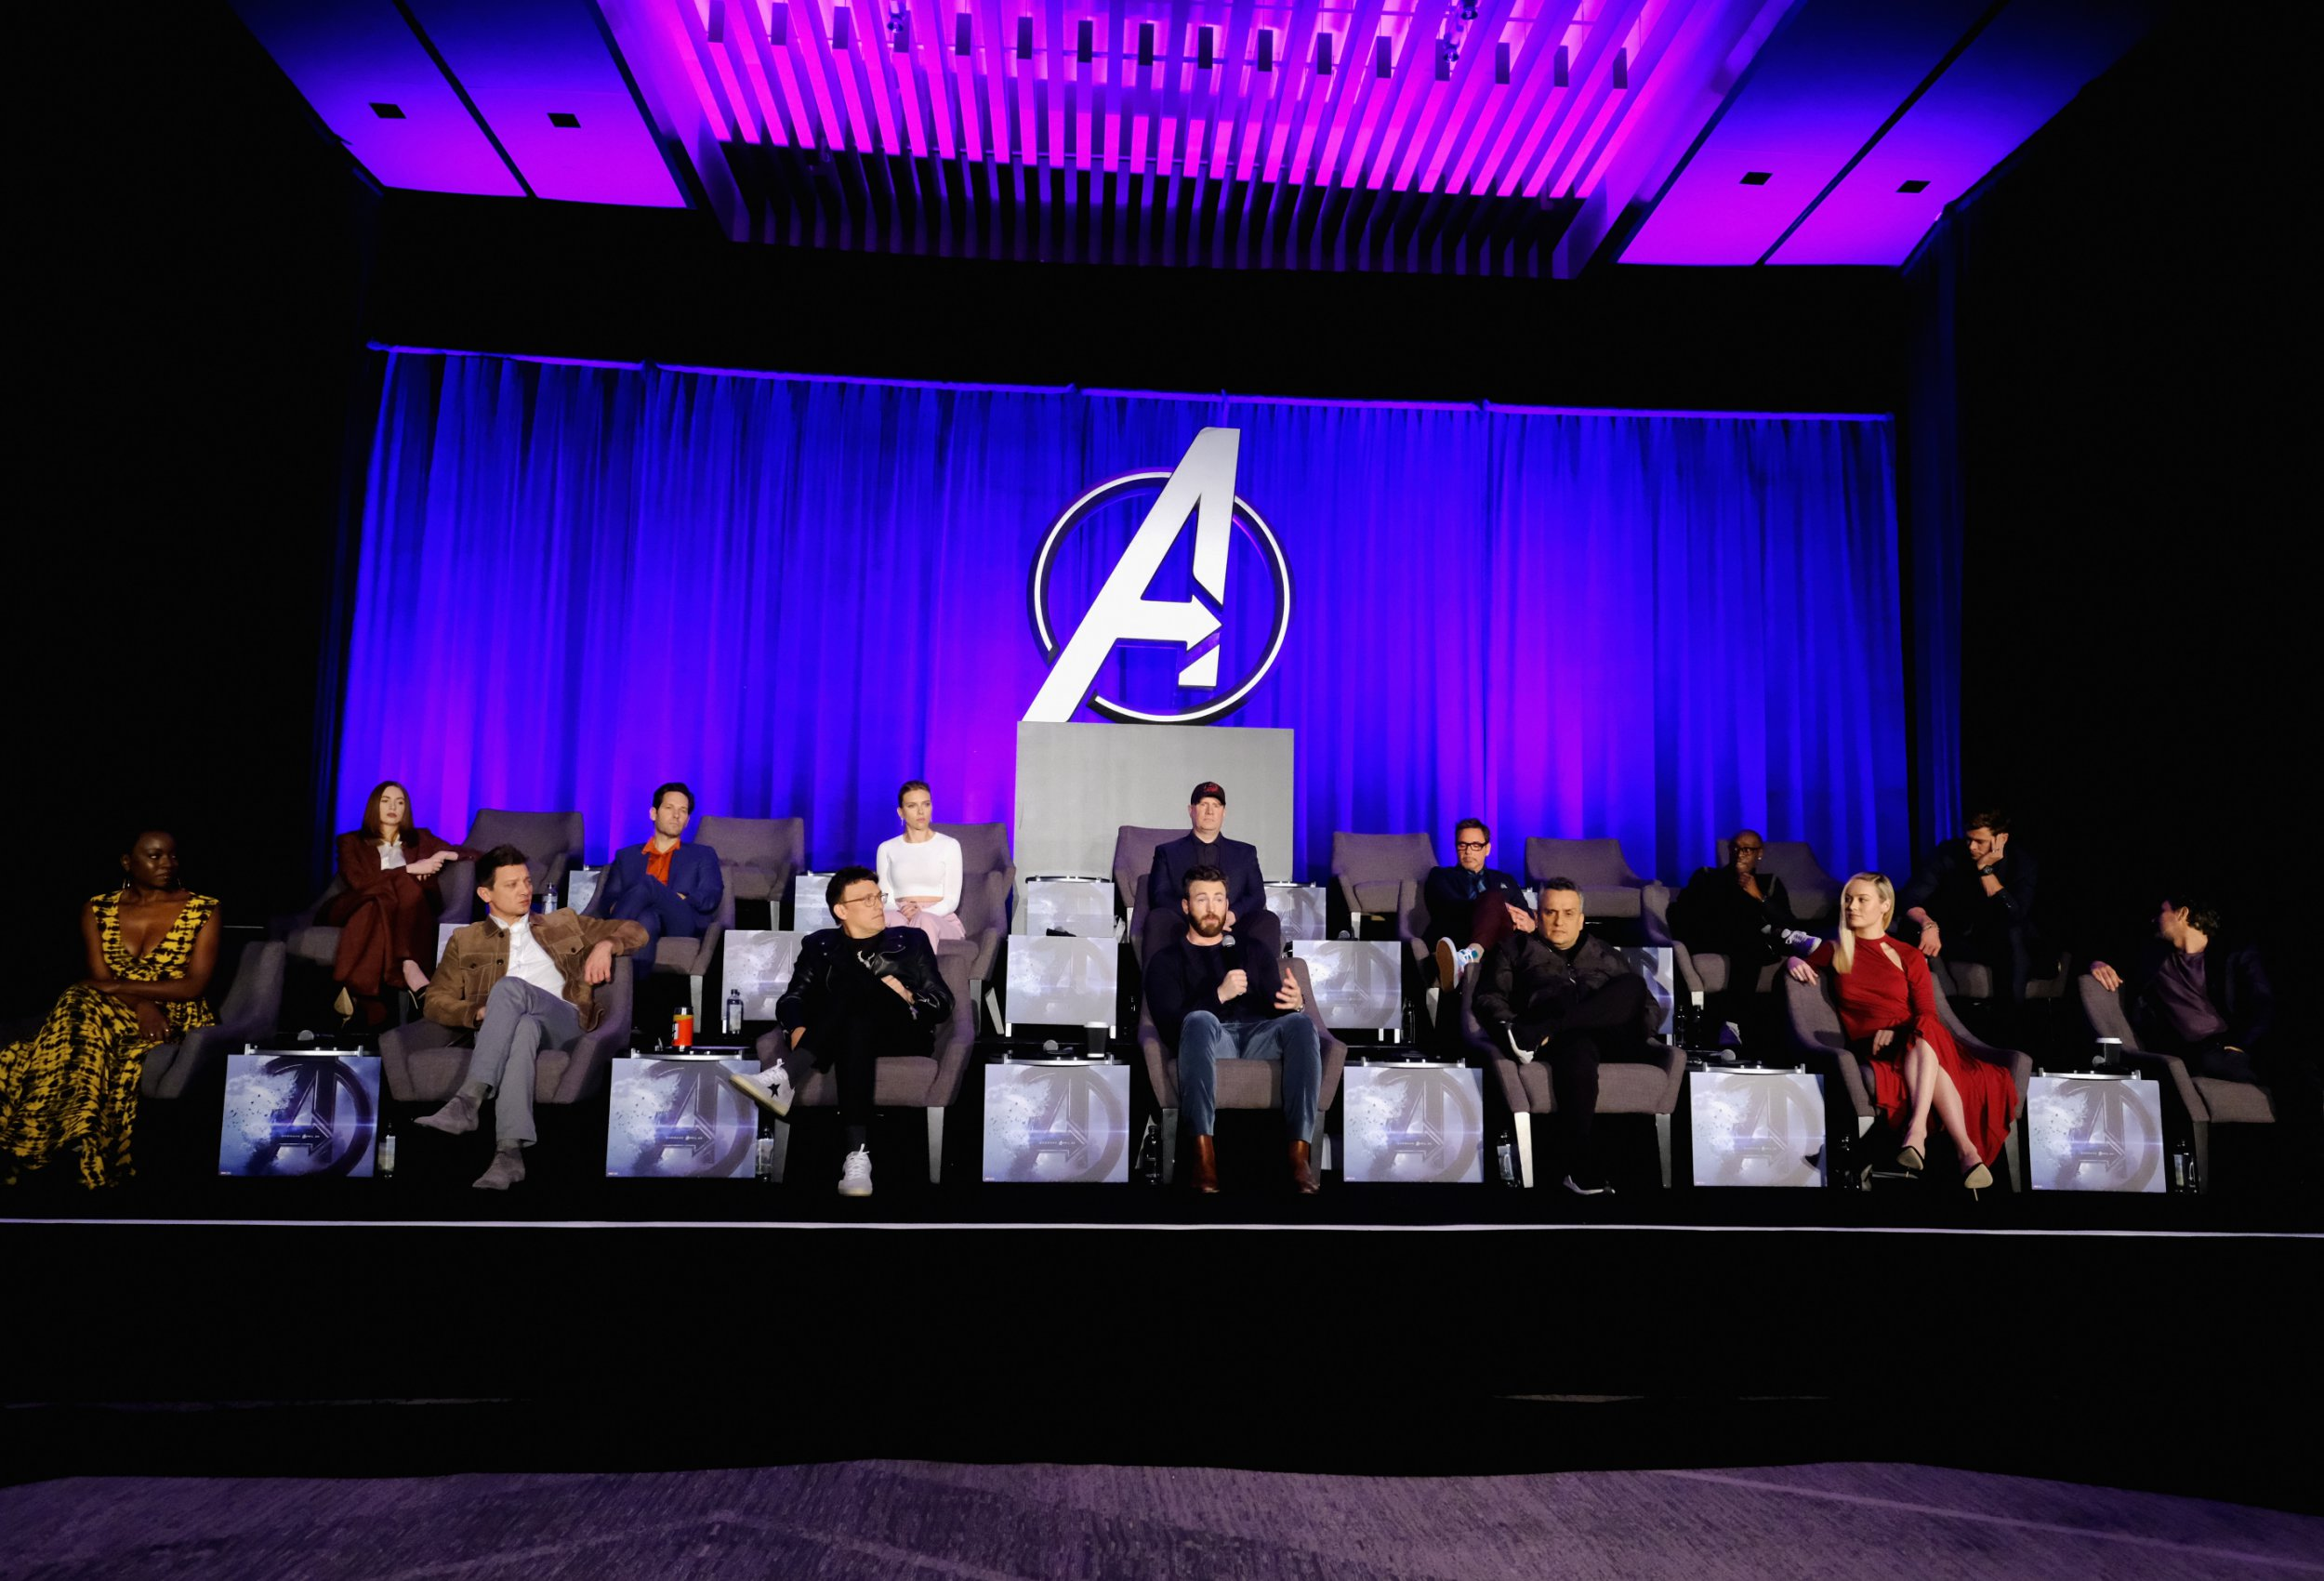 Avengers: Endgame conference leaves empty chairs for 'fallen' heroes